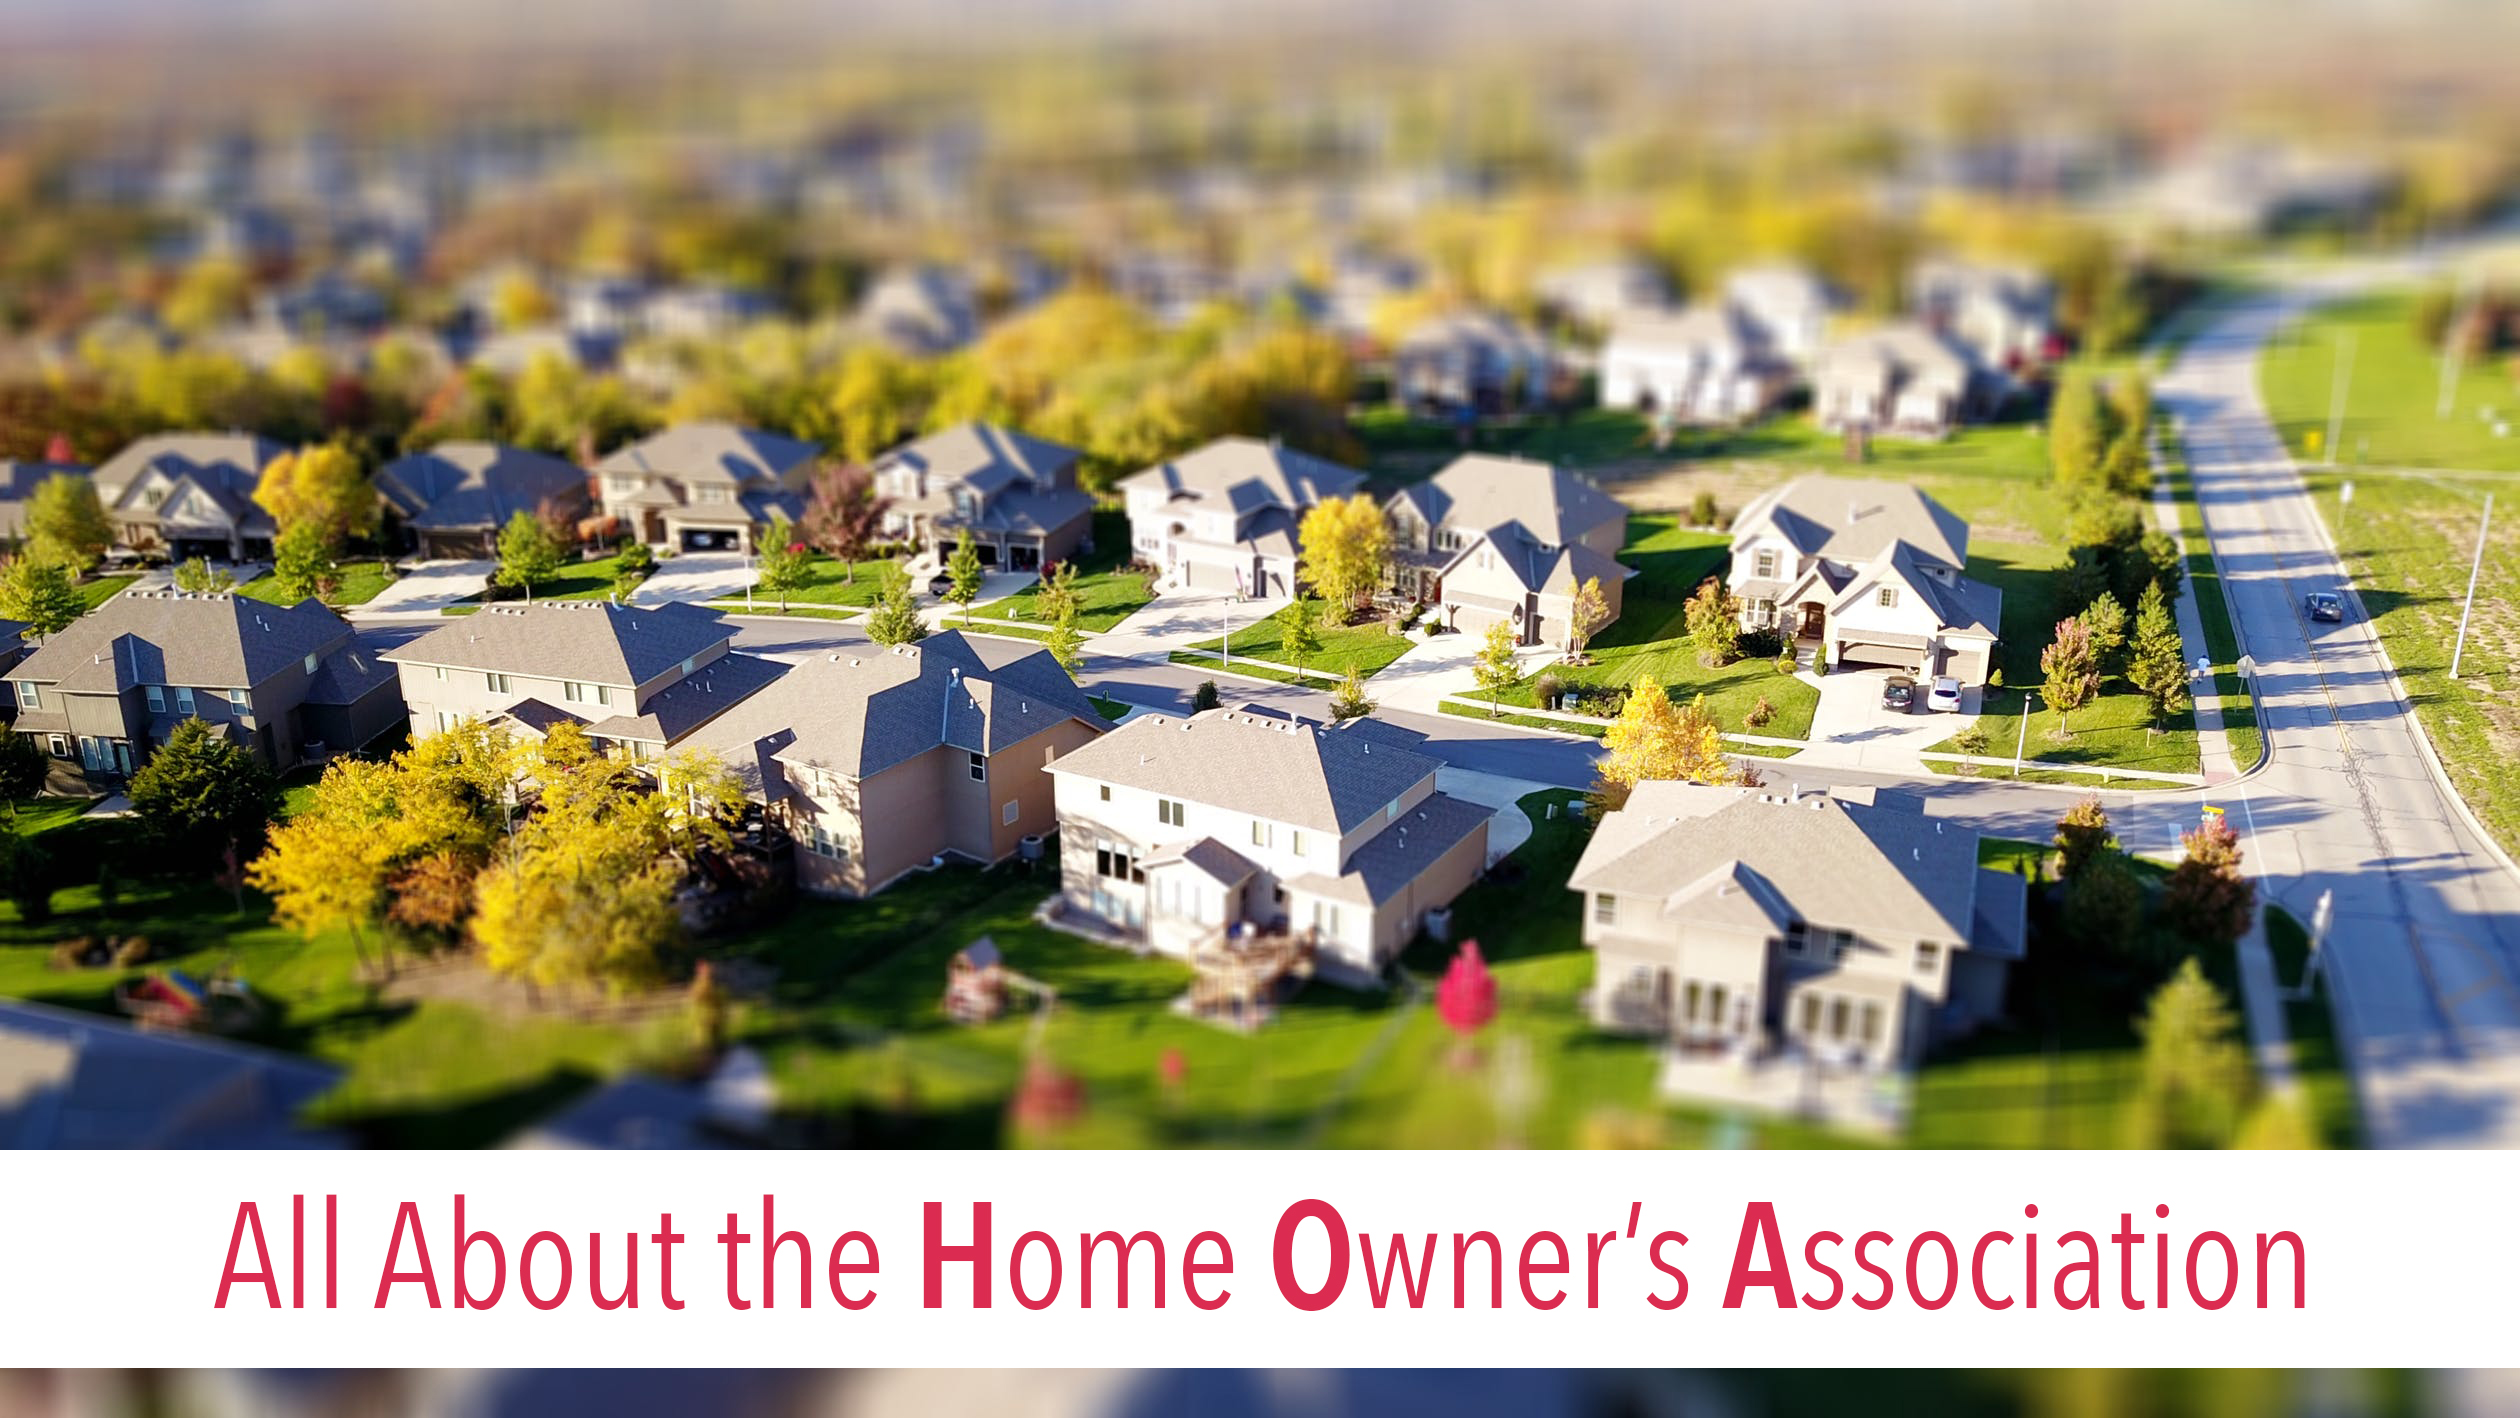 All about the Home Owner's Association